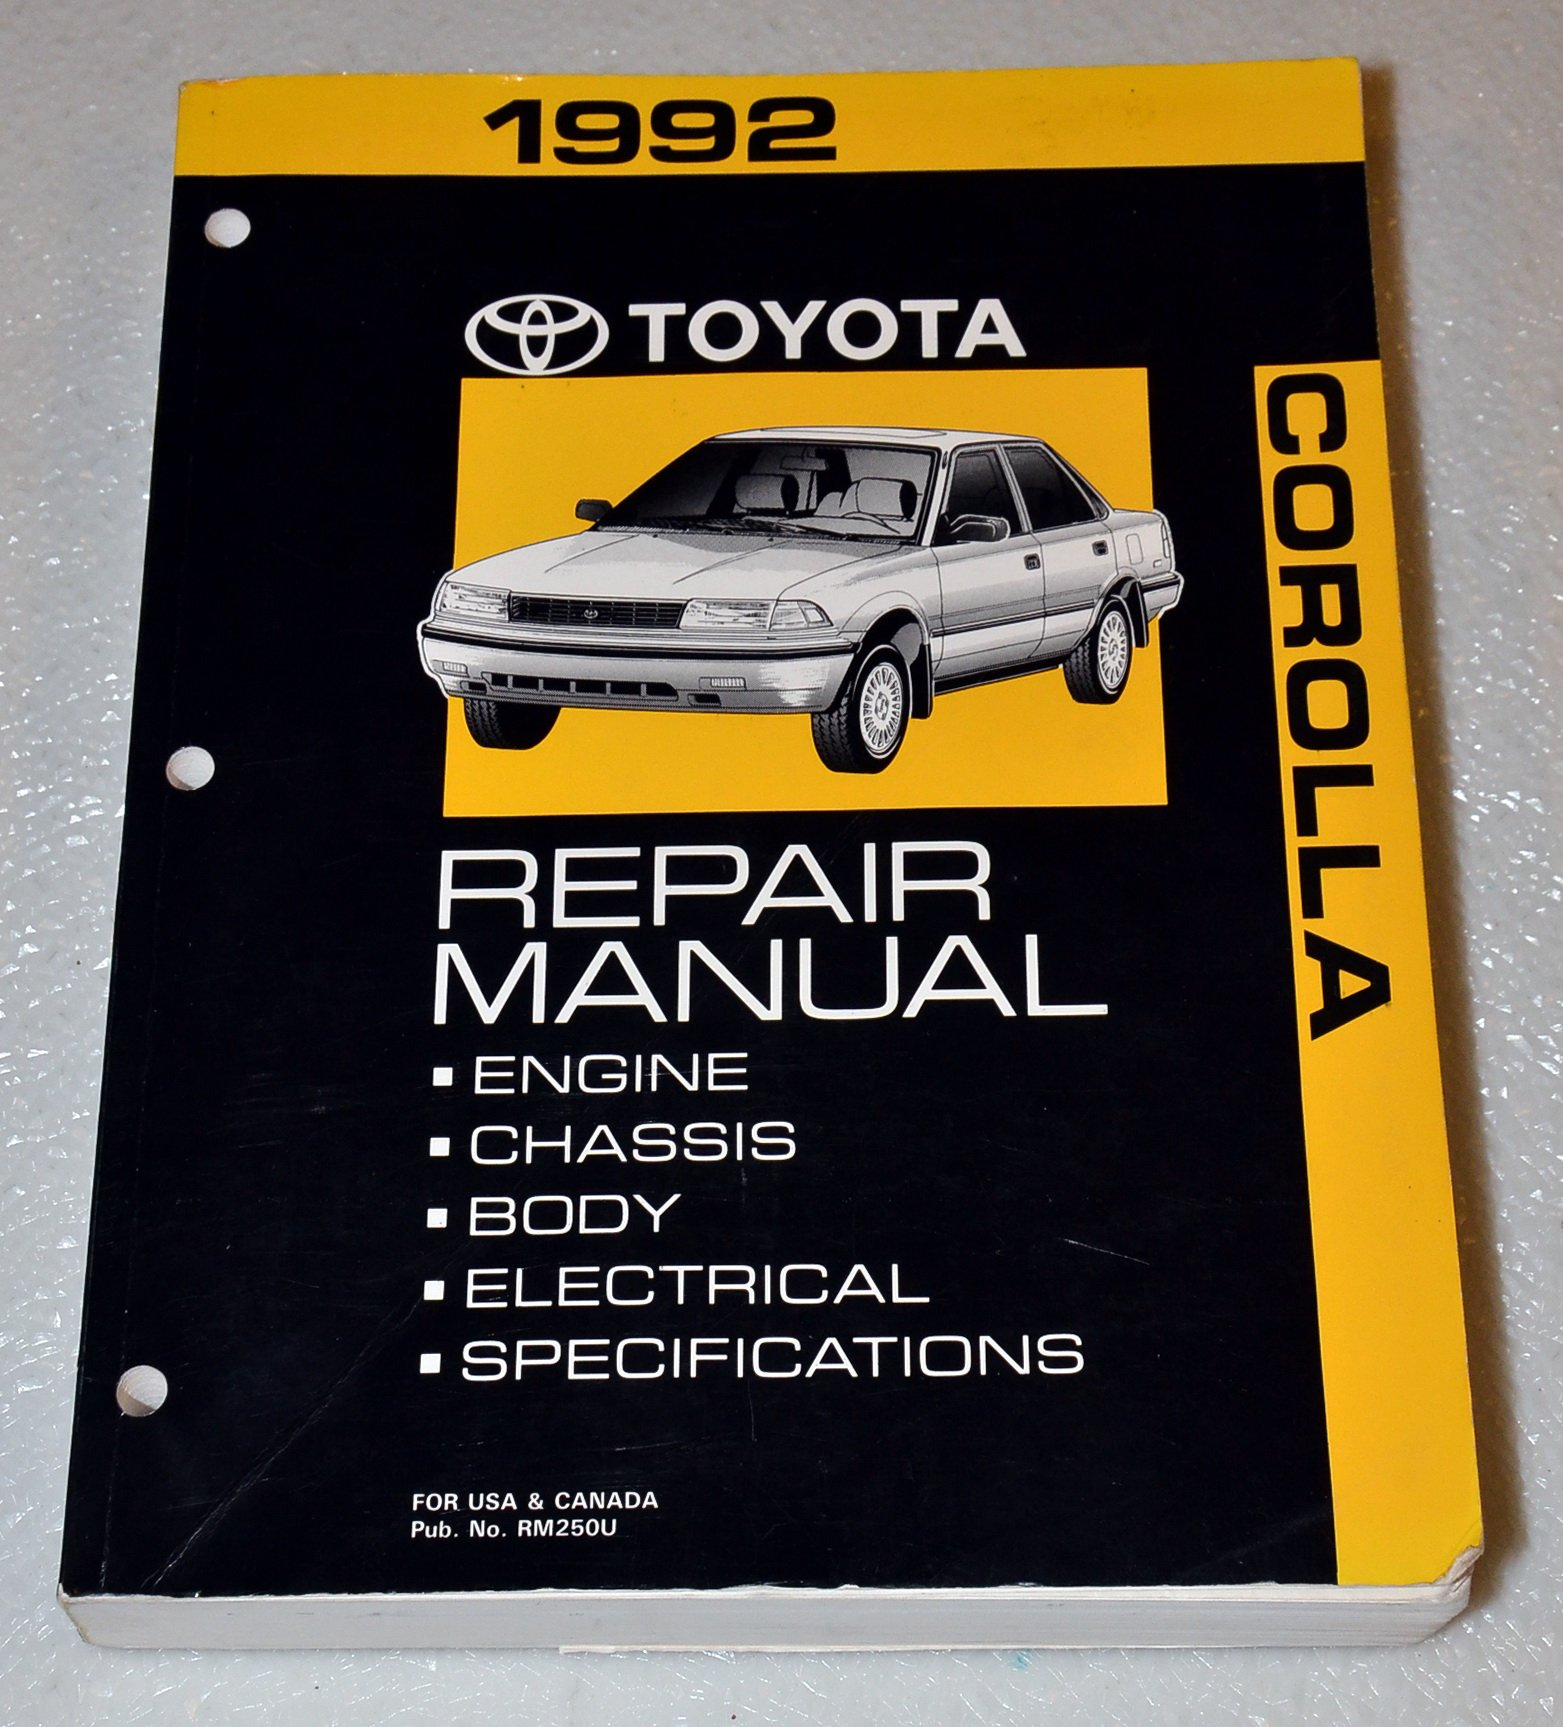 Toyota Corolla Repair Manual: Replacement